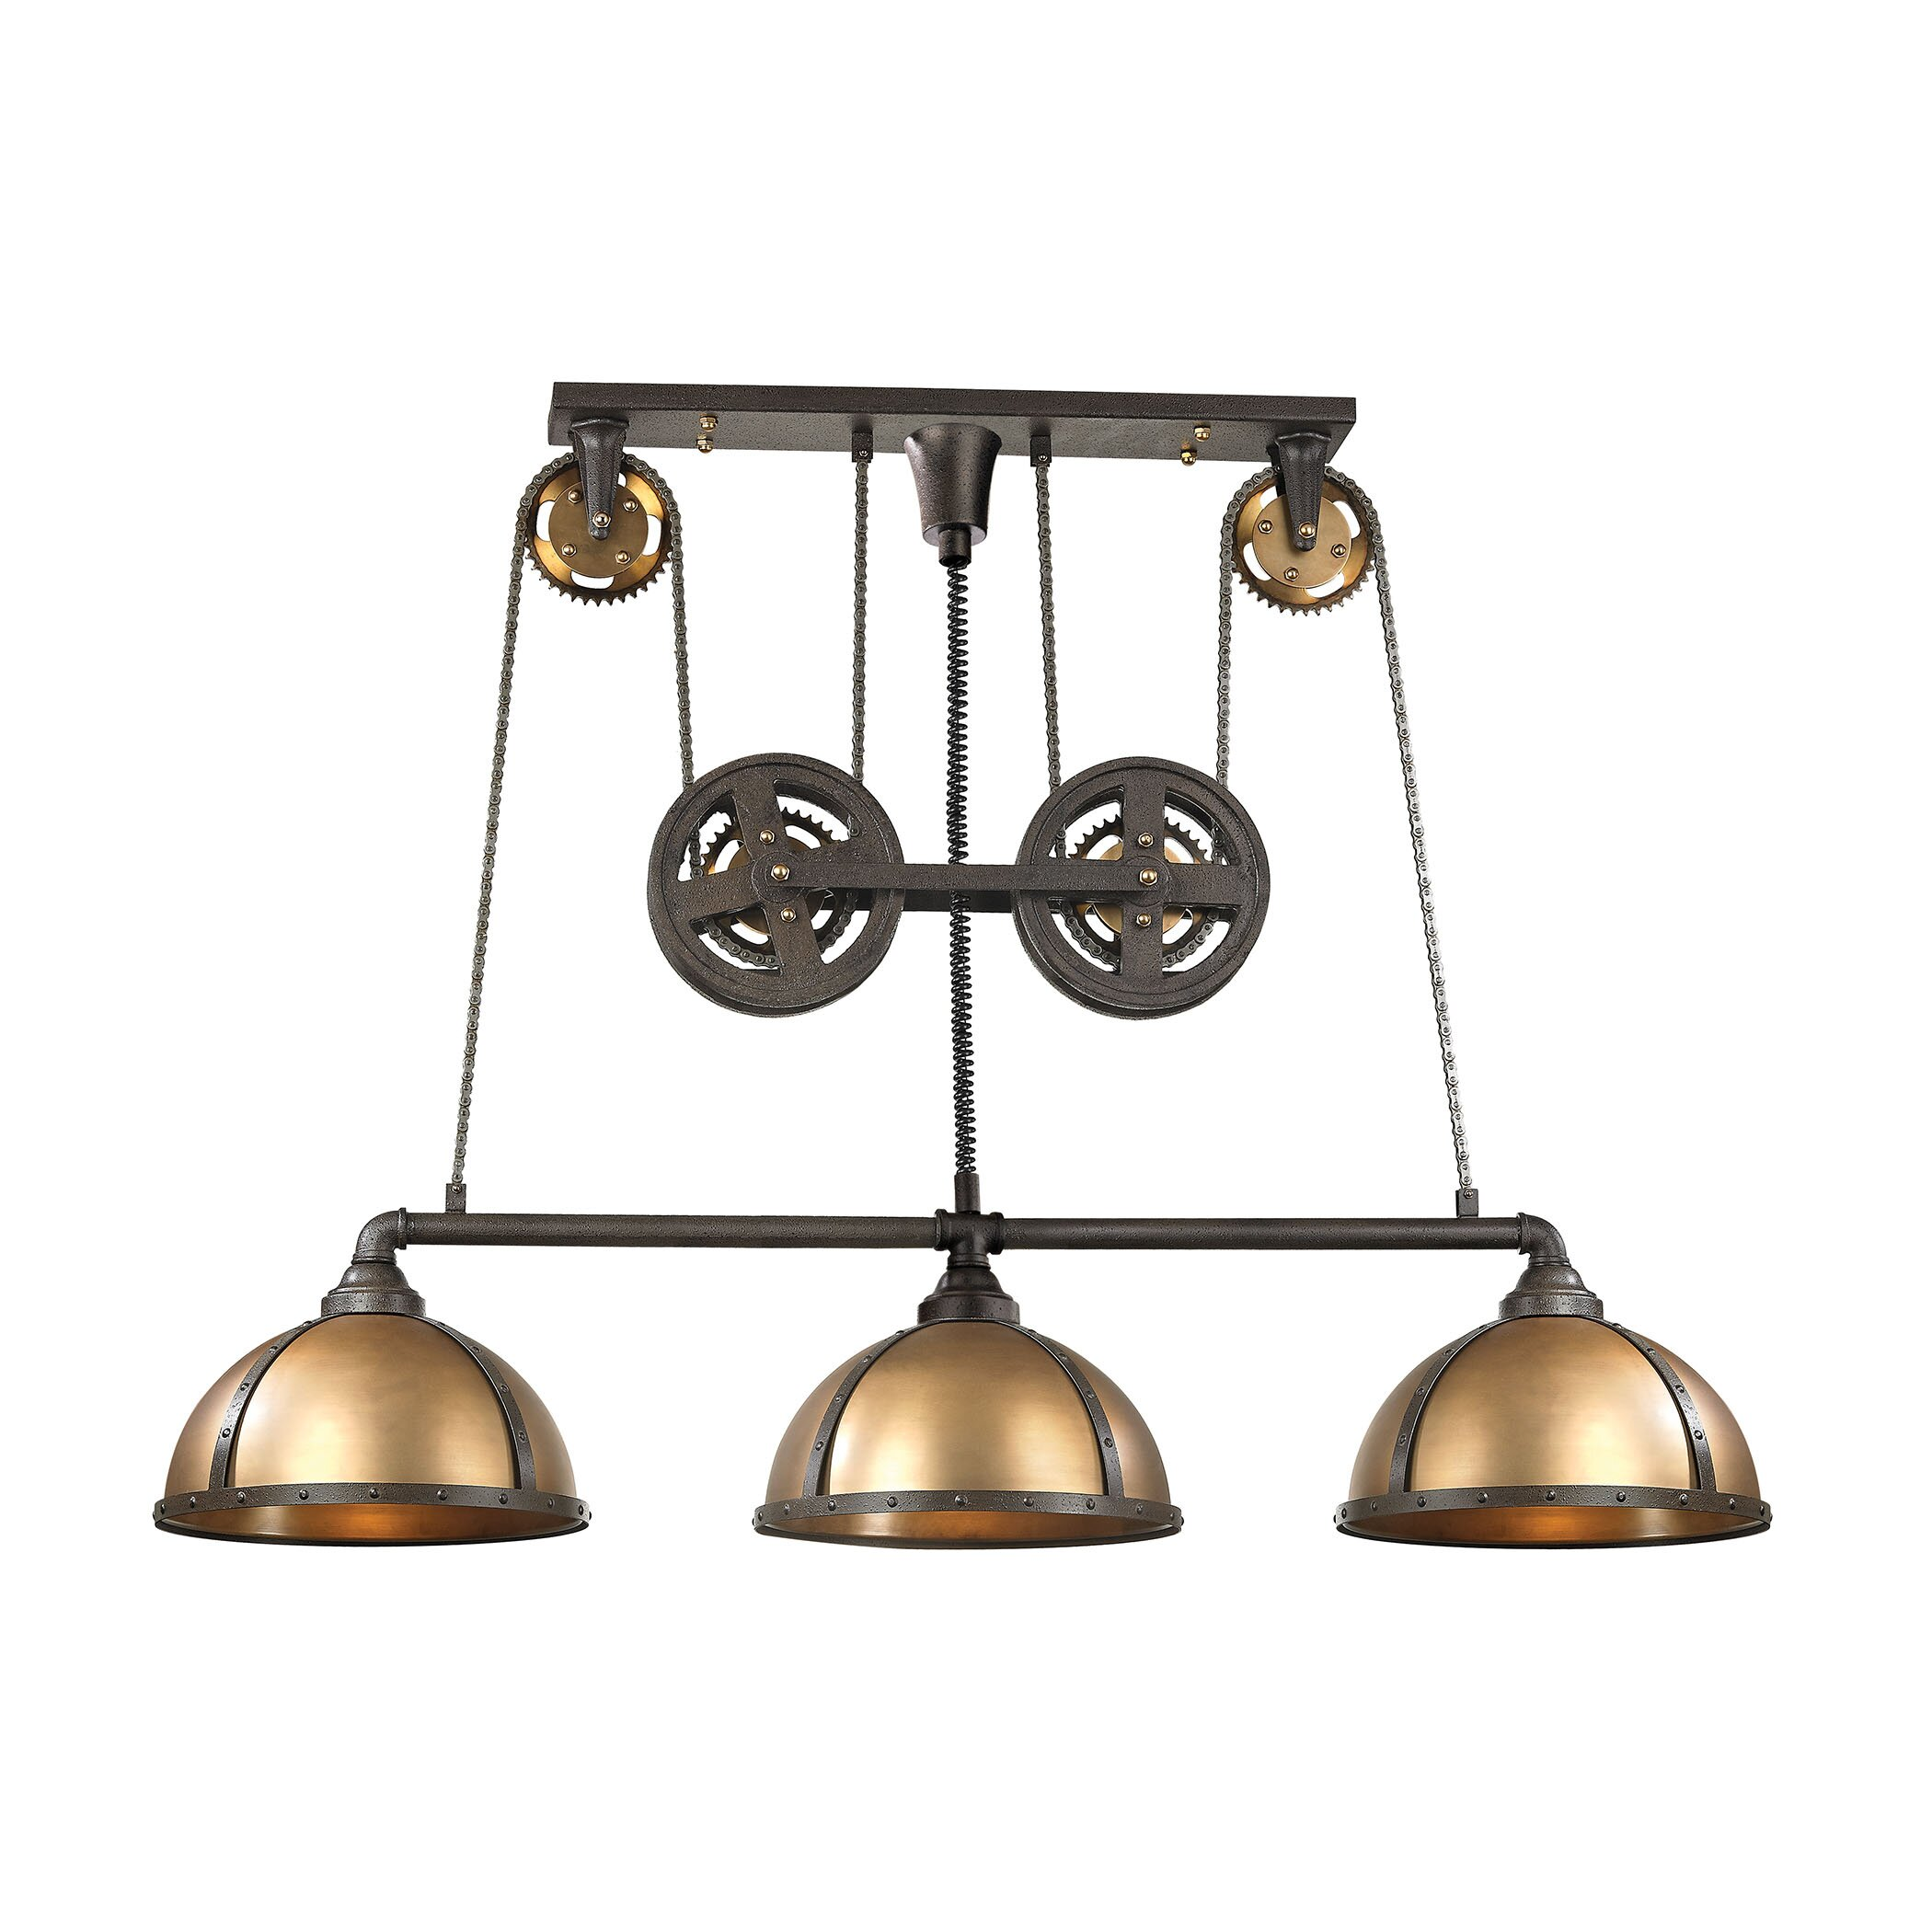 torque 3 light kitchen island pendant wayfair